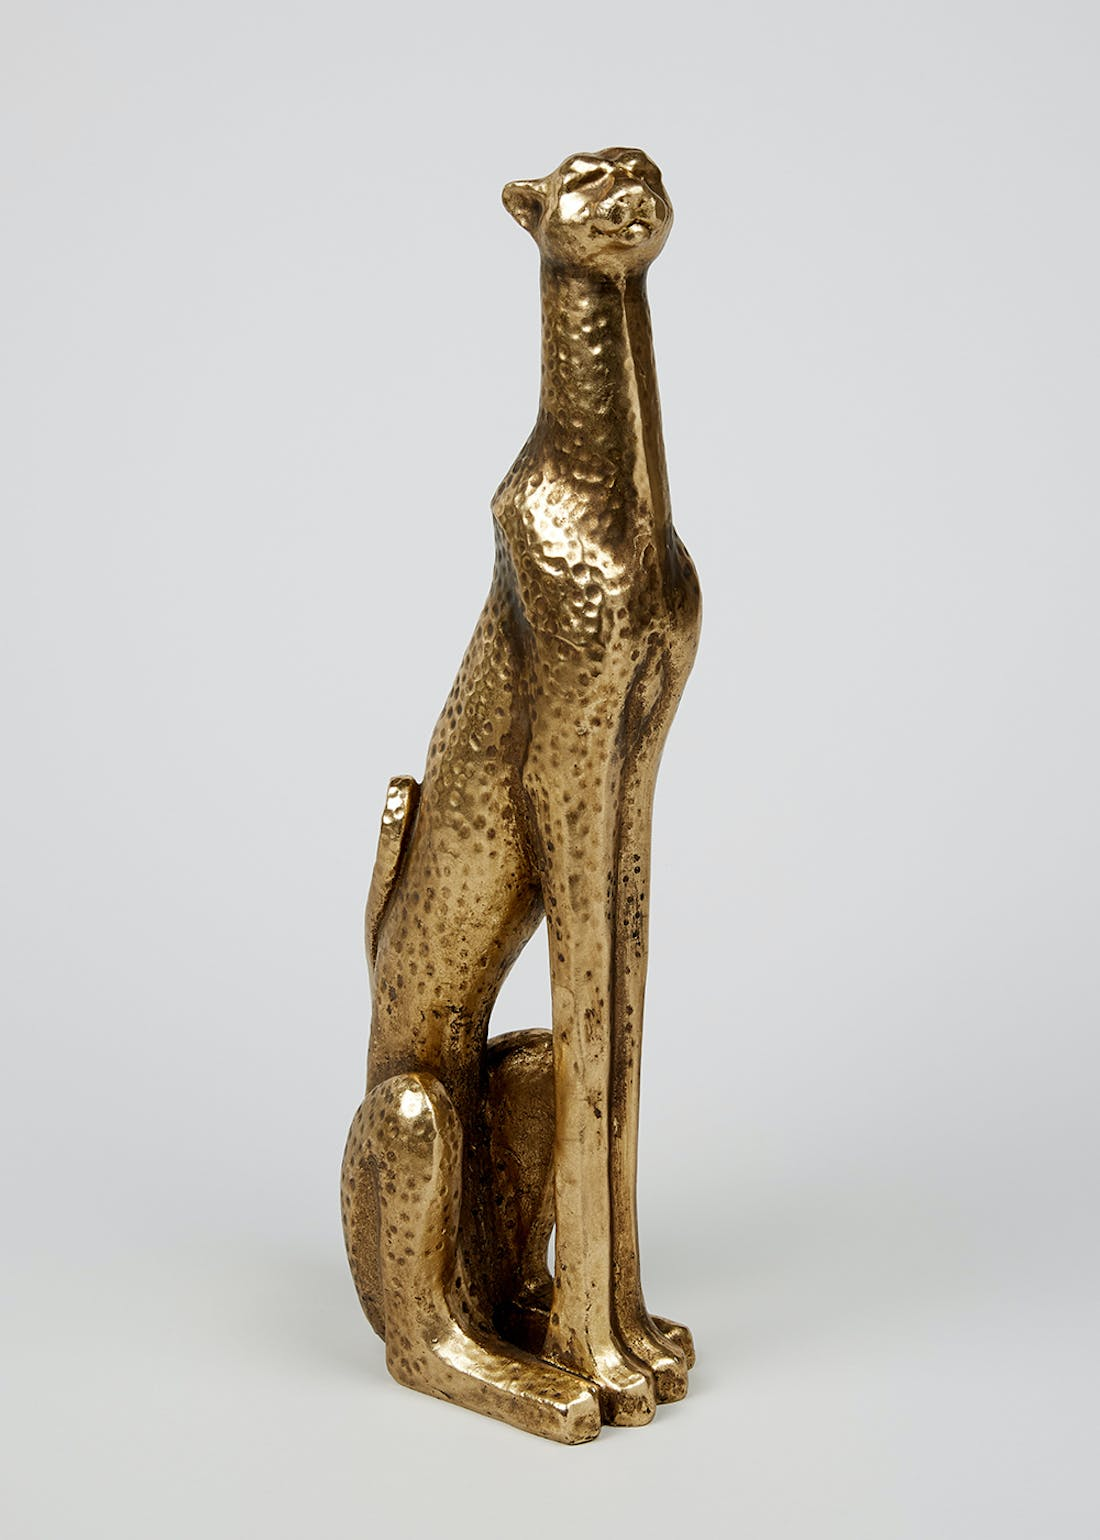 Tall Sitting Leopard Ornament (50cm x 16cm x 10cm)